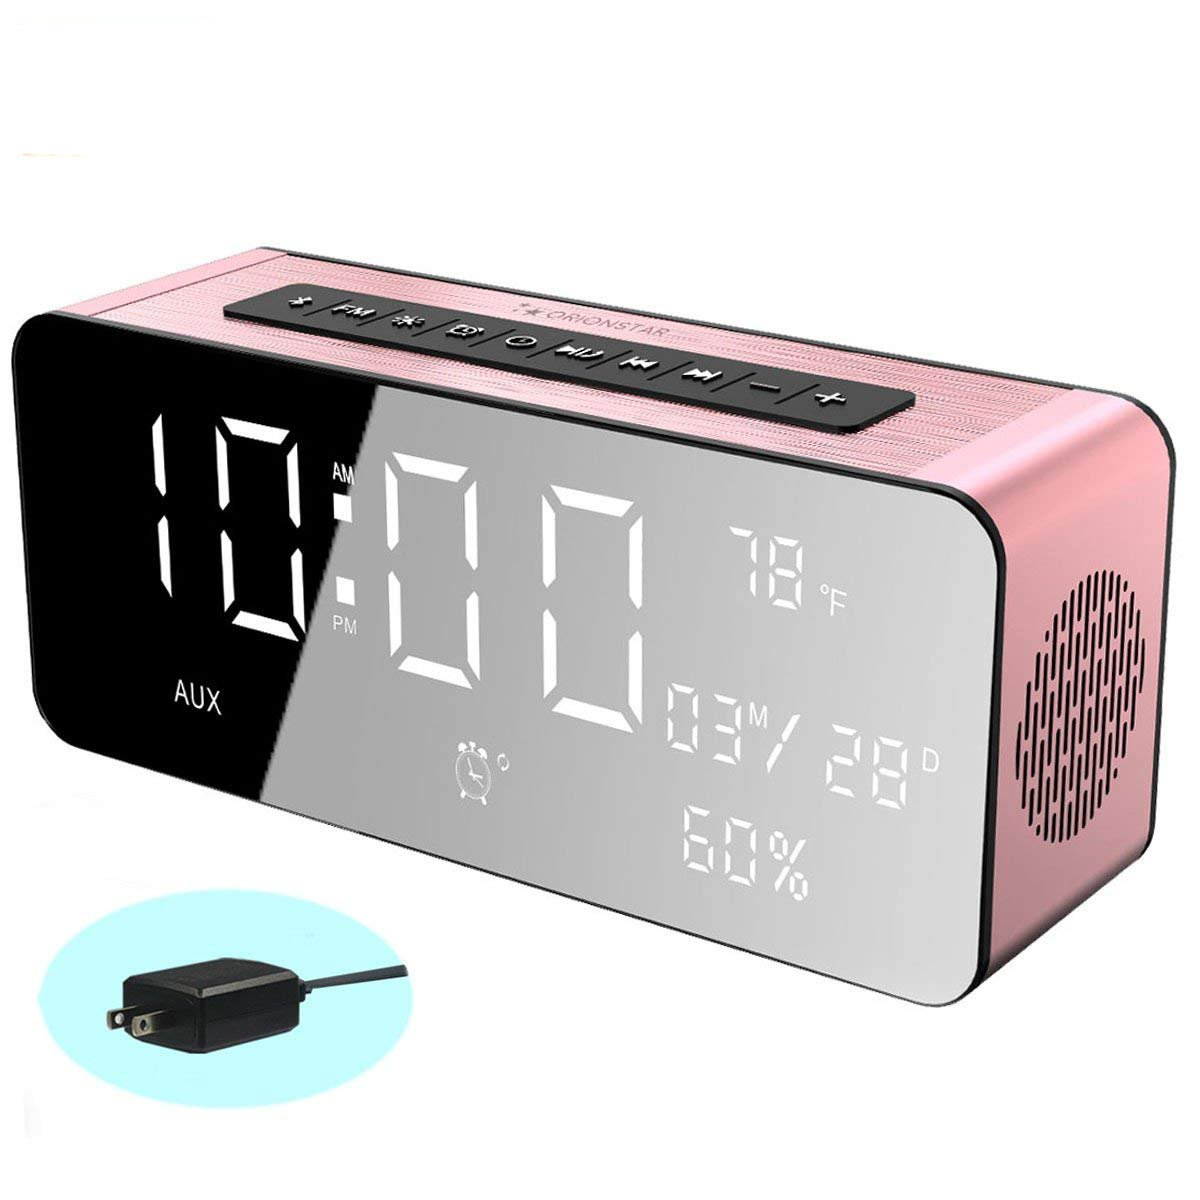 Orionstar Wireless Bluetooth Alarm Clock Radio Speaker with HD Sound&Big Digital Screen Compatible with iPhone/Android/PC4/Aux/MicroSD/TF/USB for Bedroom Office Model A10 with Wall Charger (Pink)